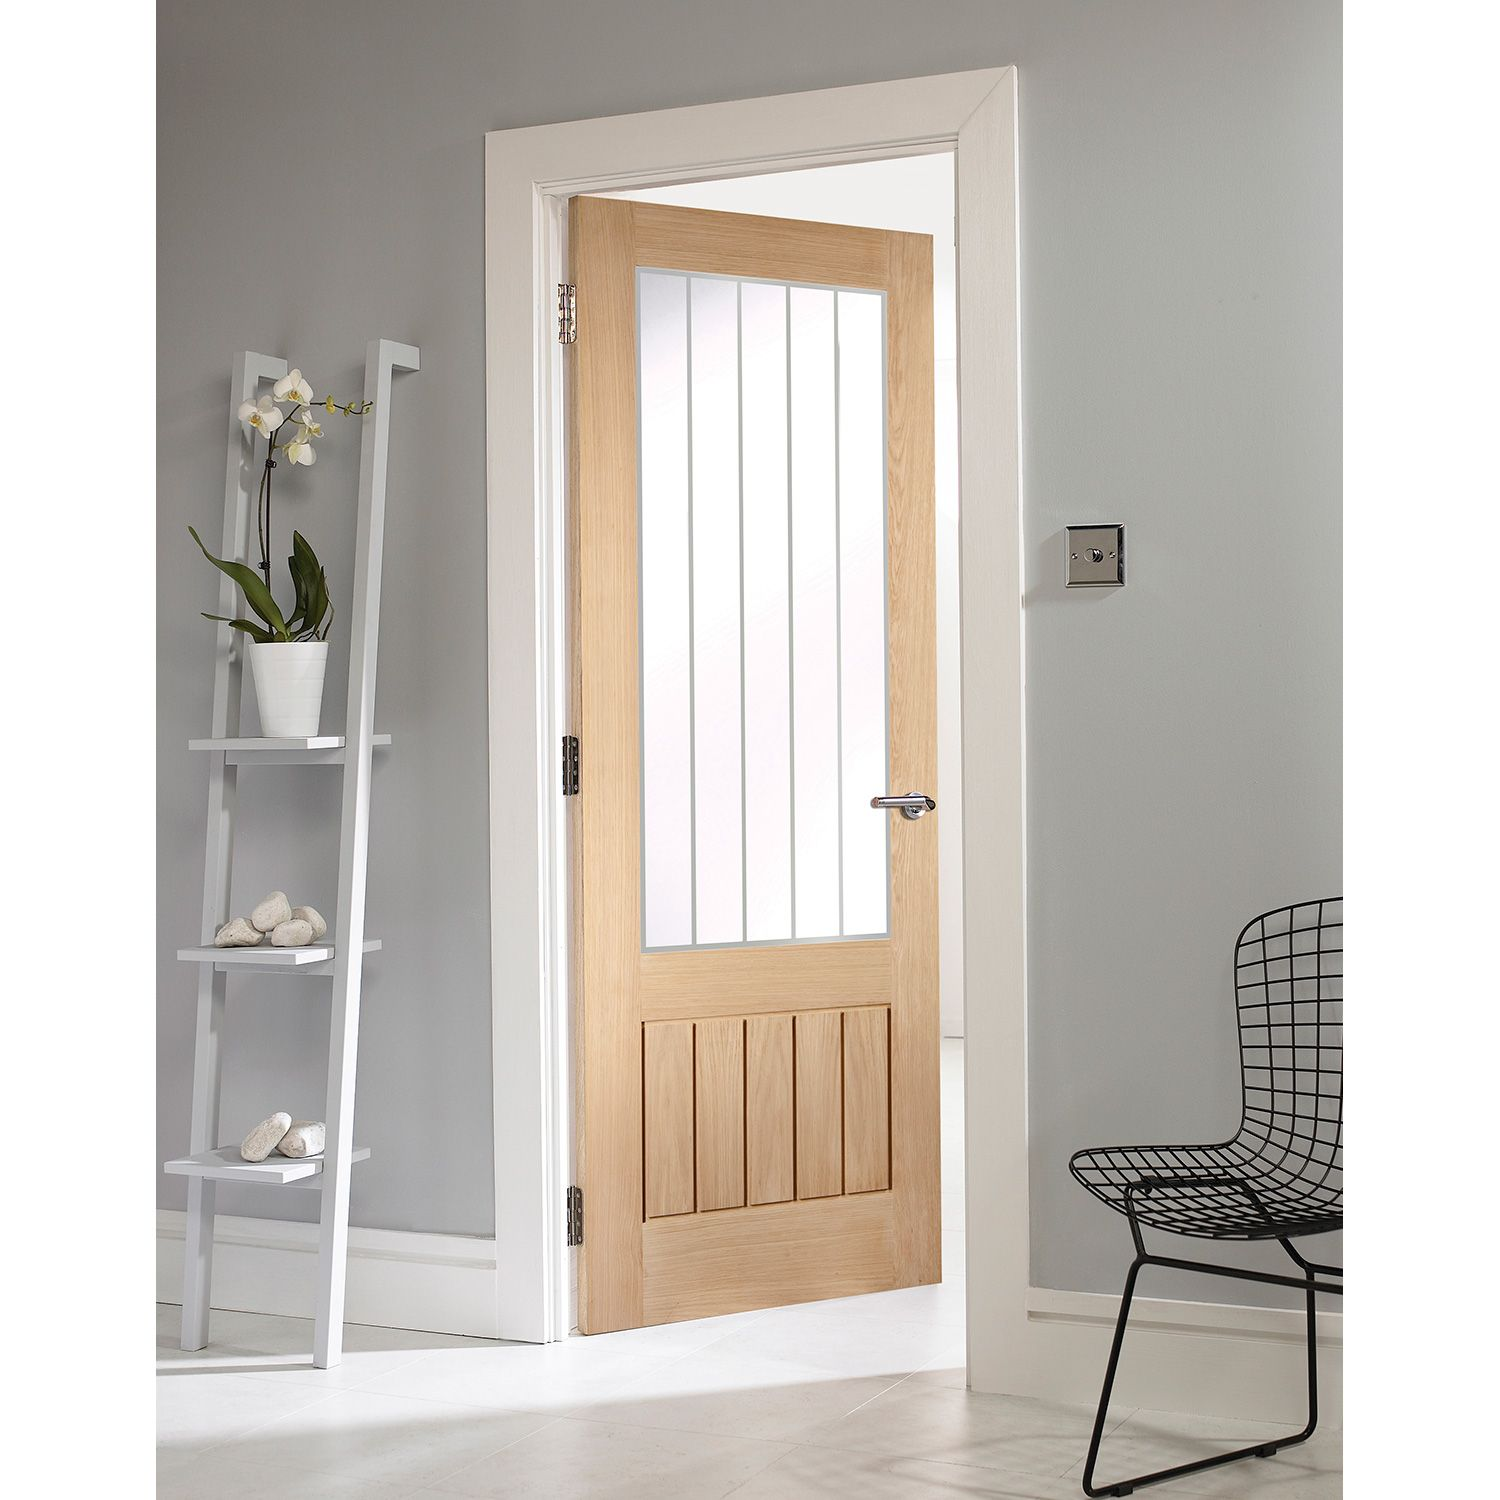 ikea size fold hardware white foot natural handles full bedroom replacement cu bifold french prices ac rolling albright metal dutch putting internal framed wood custom buy bi sliding mirrored lowes hinged door rebecca closet interior mirror wardrobe of options double beauty glass doors img bathroom